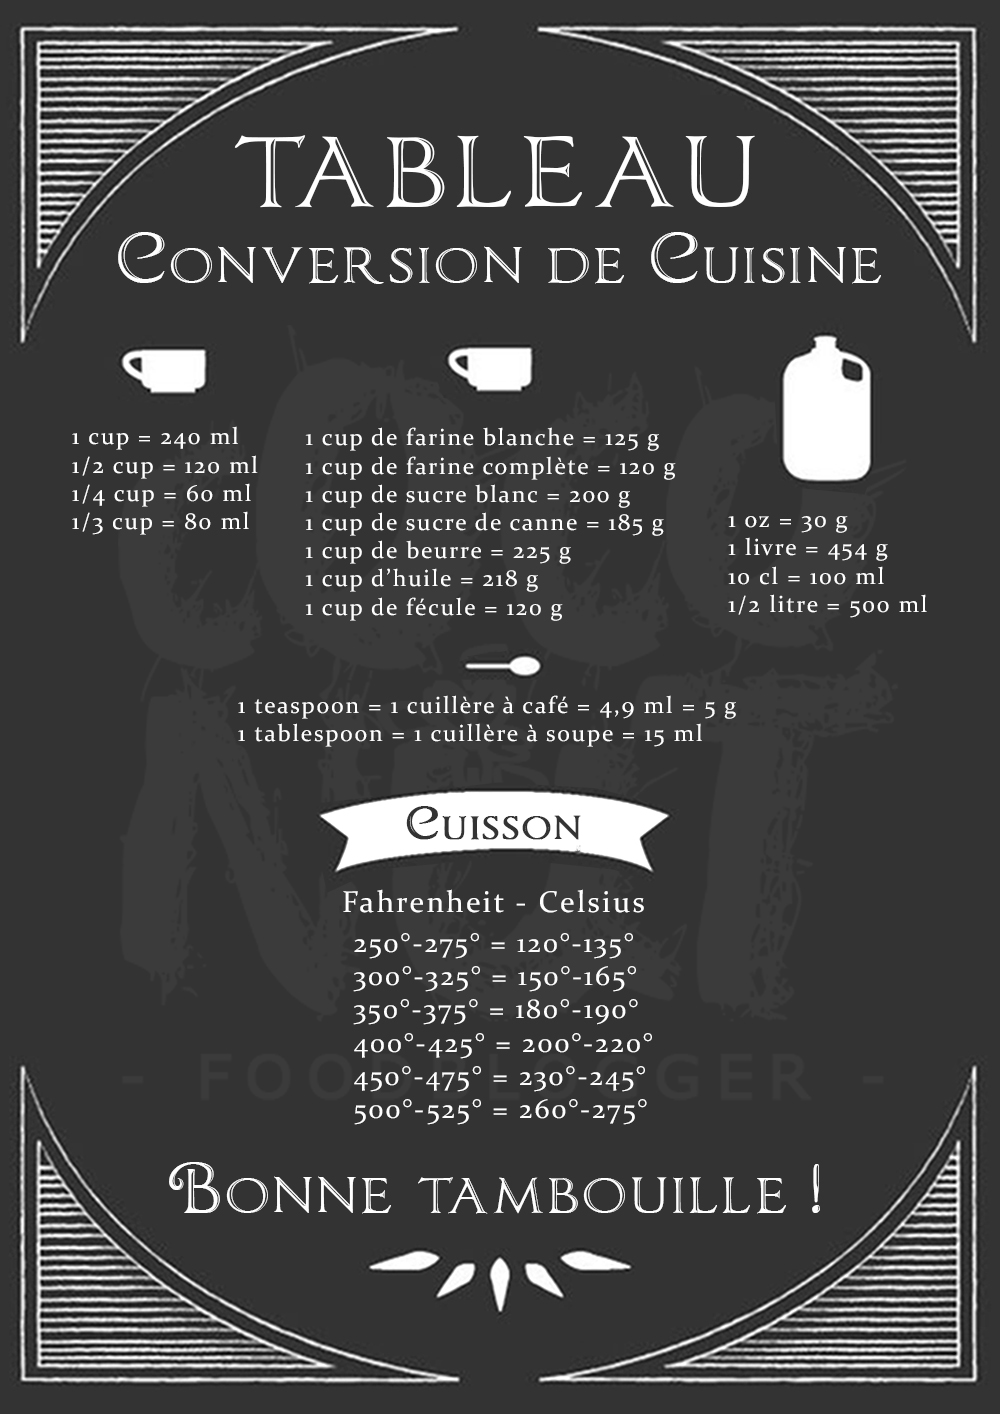 Affiche conversion cuisine quivalence us blog coconut - Table de conversion cuisine ...